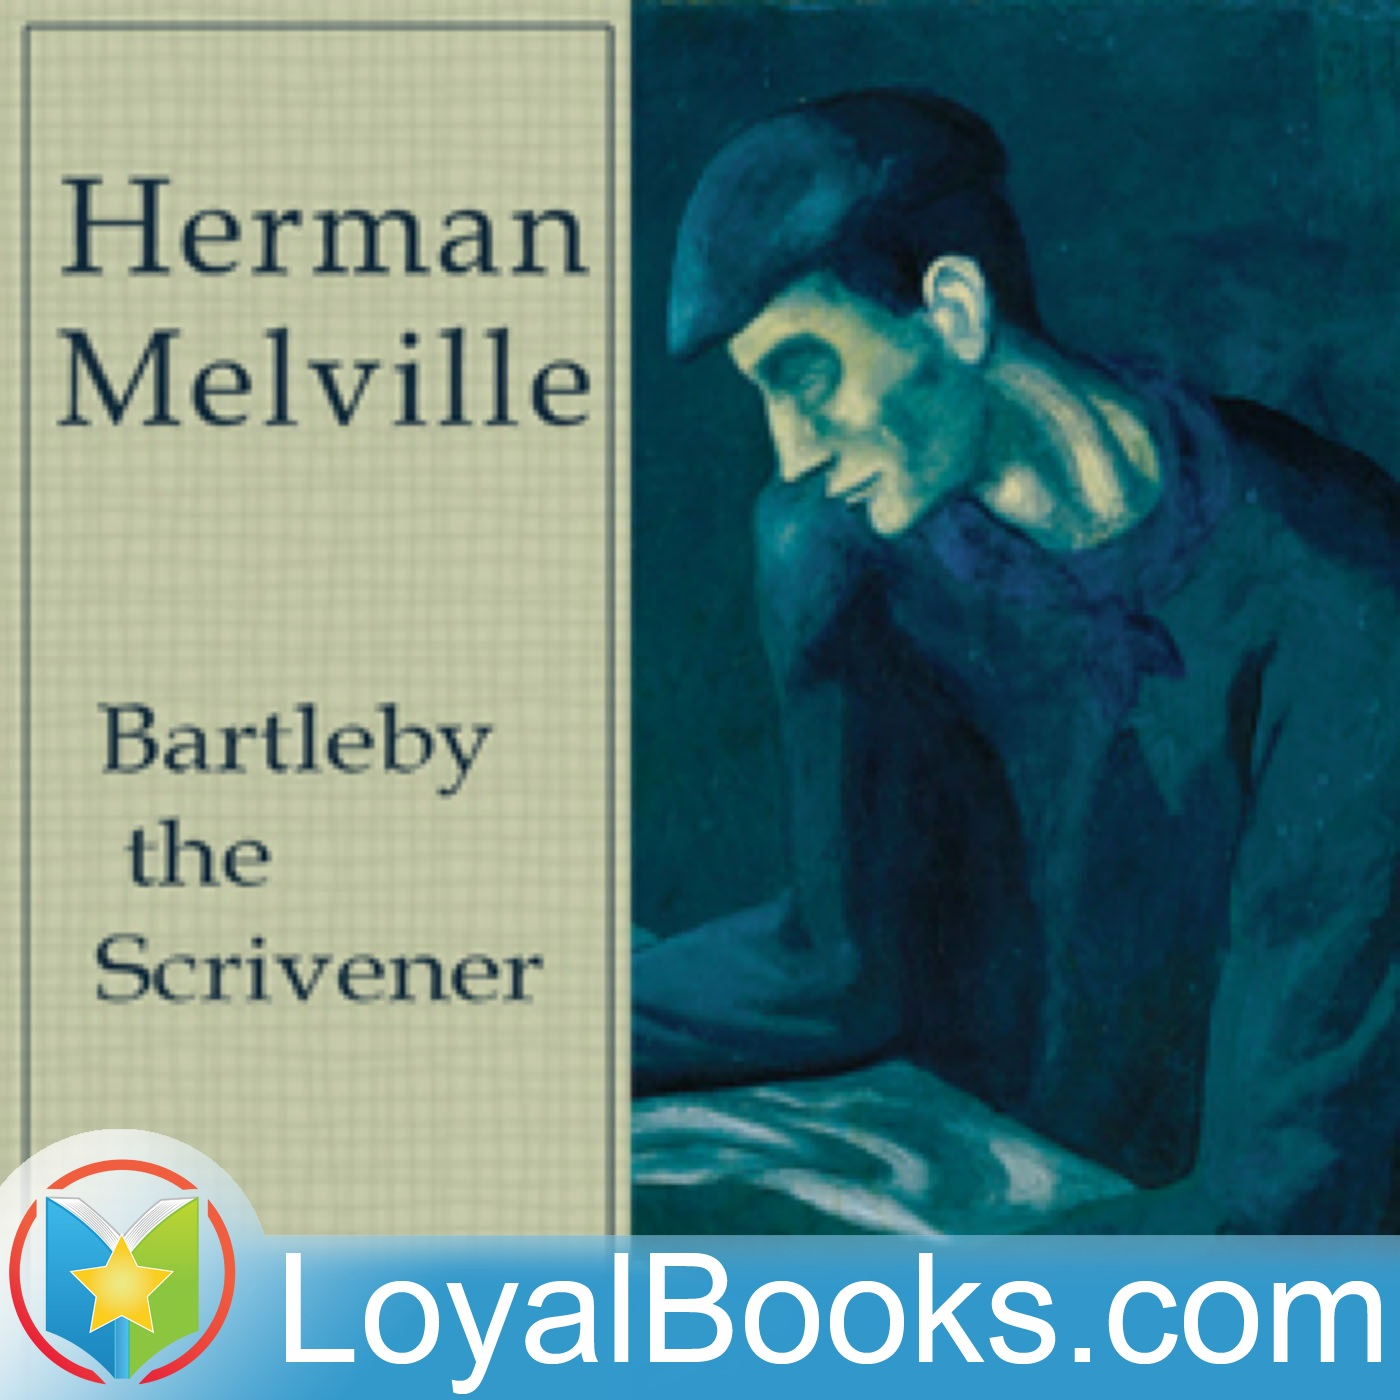 a literary analysis of the short story bartleby the scrivener by herman melville Bartleby, the scrivener: a story of wall street [herman melville] on amazoncom free shipping on qualifying offers bartleby, the scrivener is the short story by herman melville now brought to you in this new edition of the timeless classic.